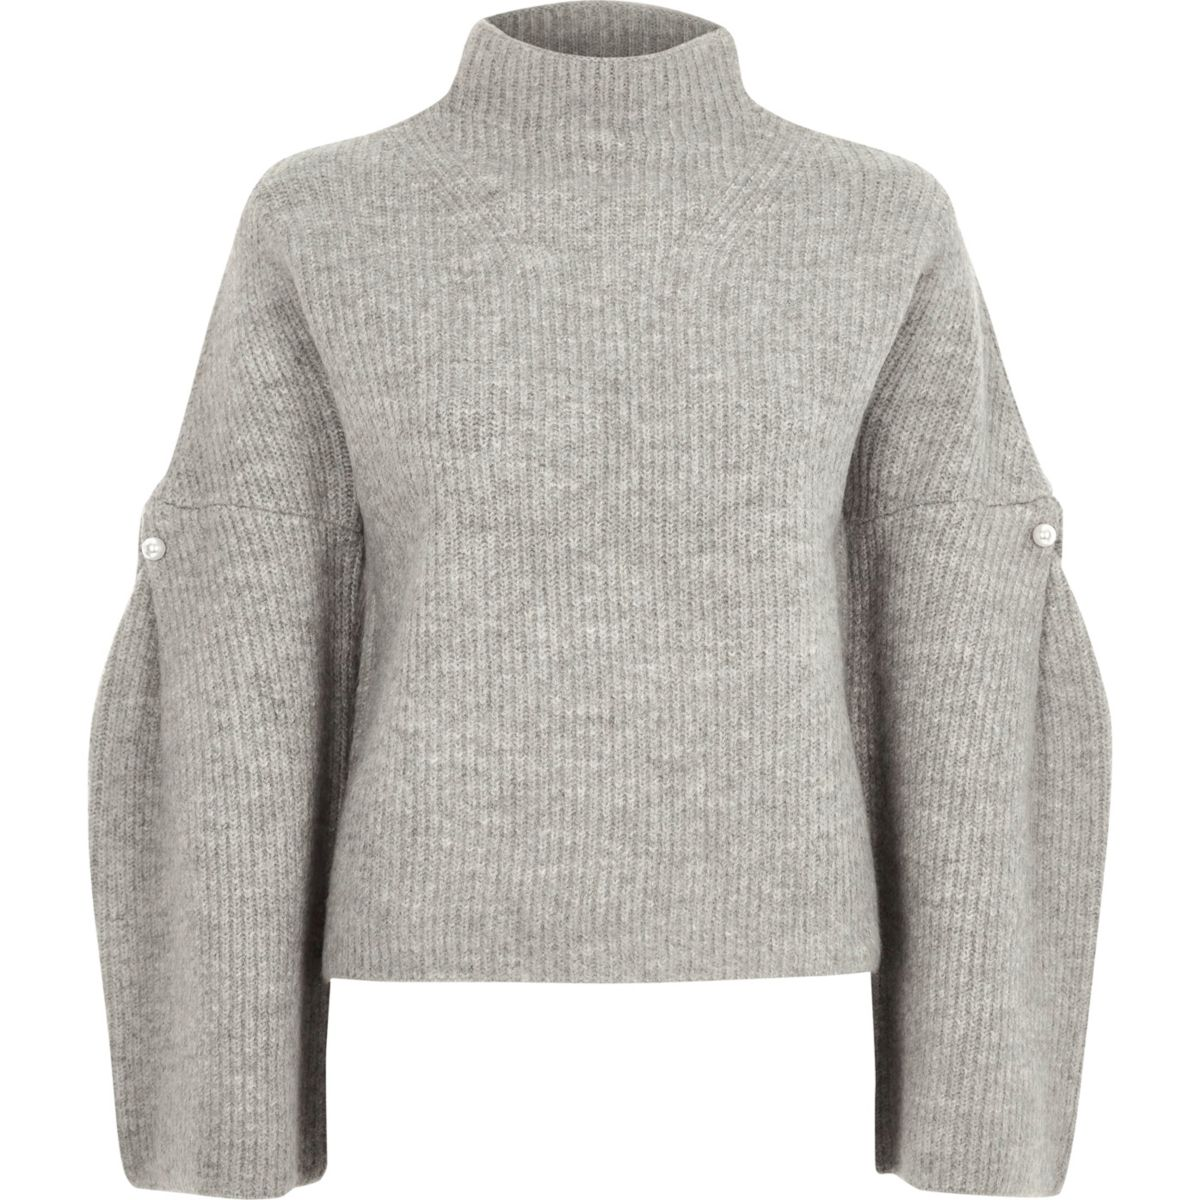 Grey high neck wide sleeve knit jumper